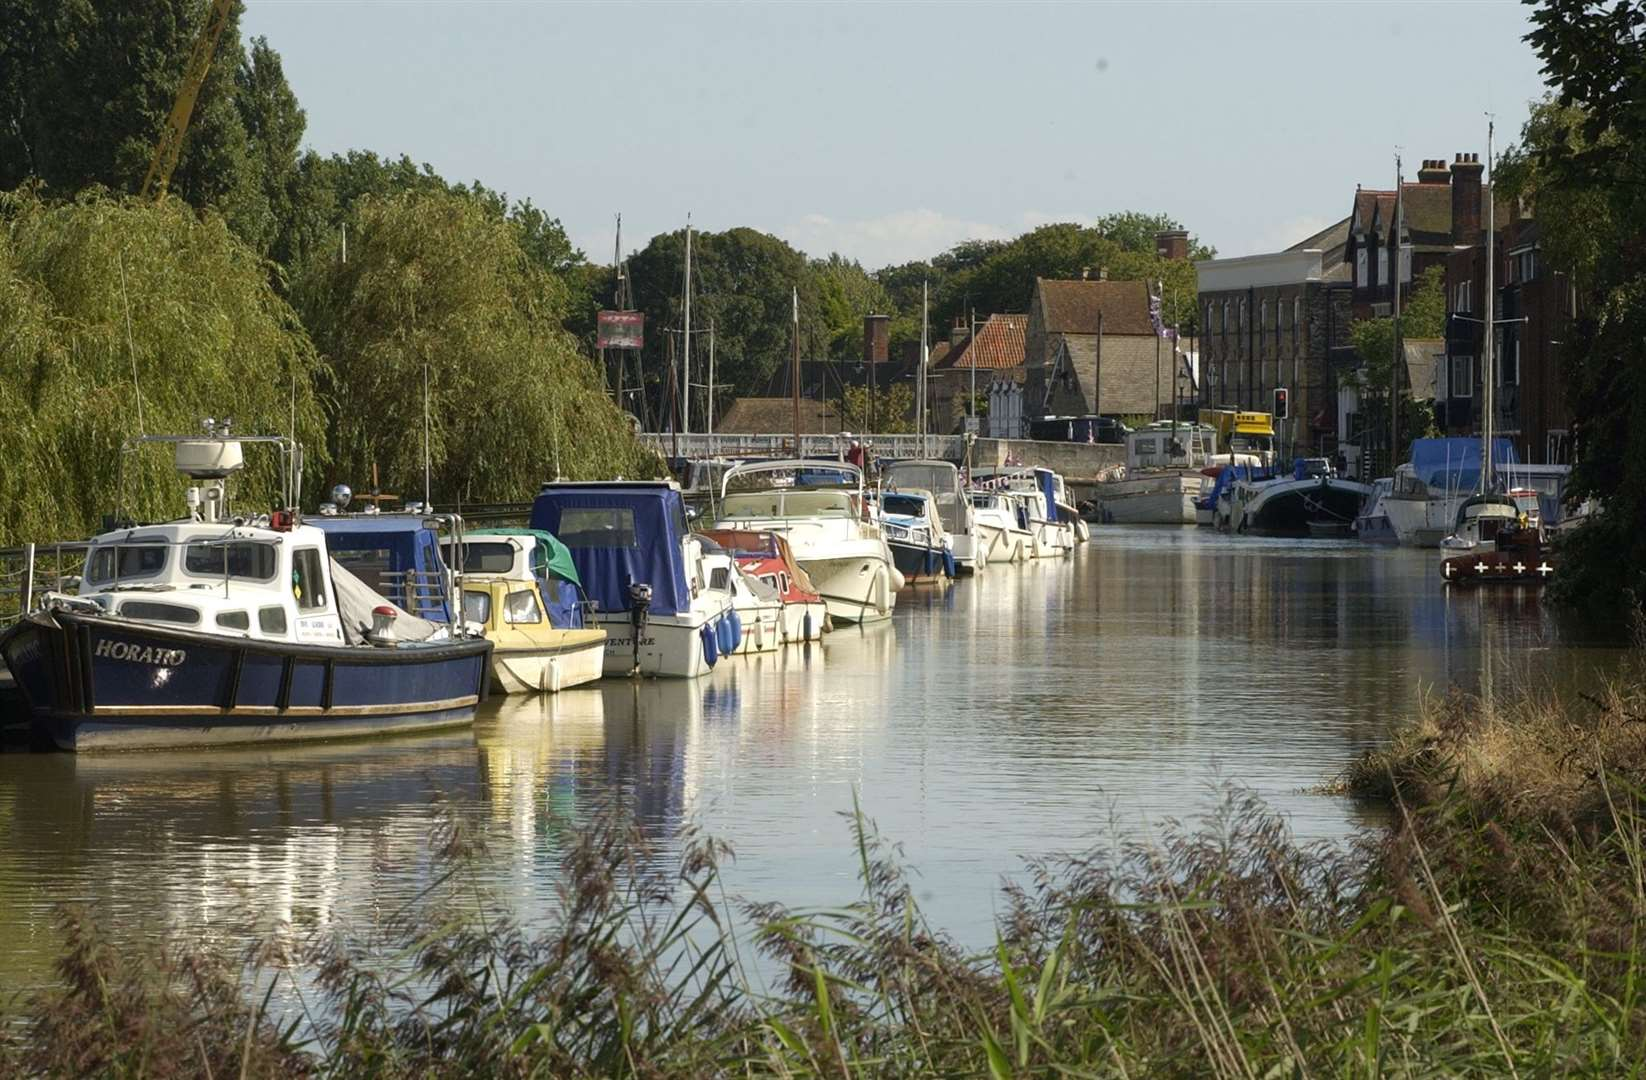 The river Stour at Sandwich. Picture by Terry Scott